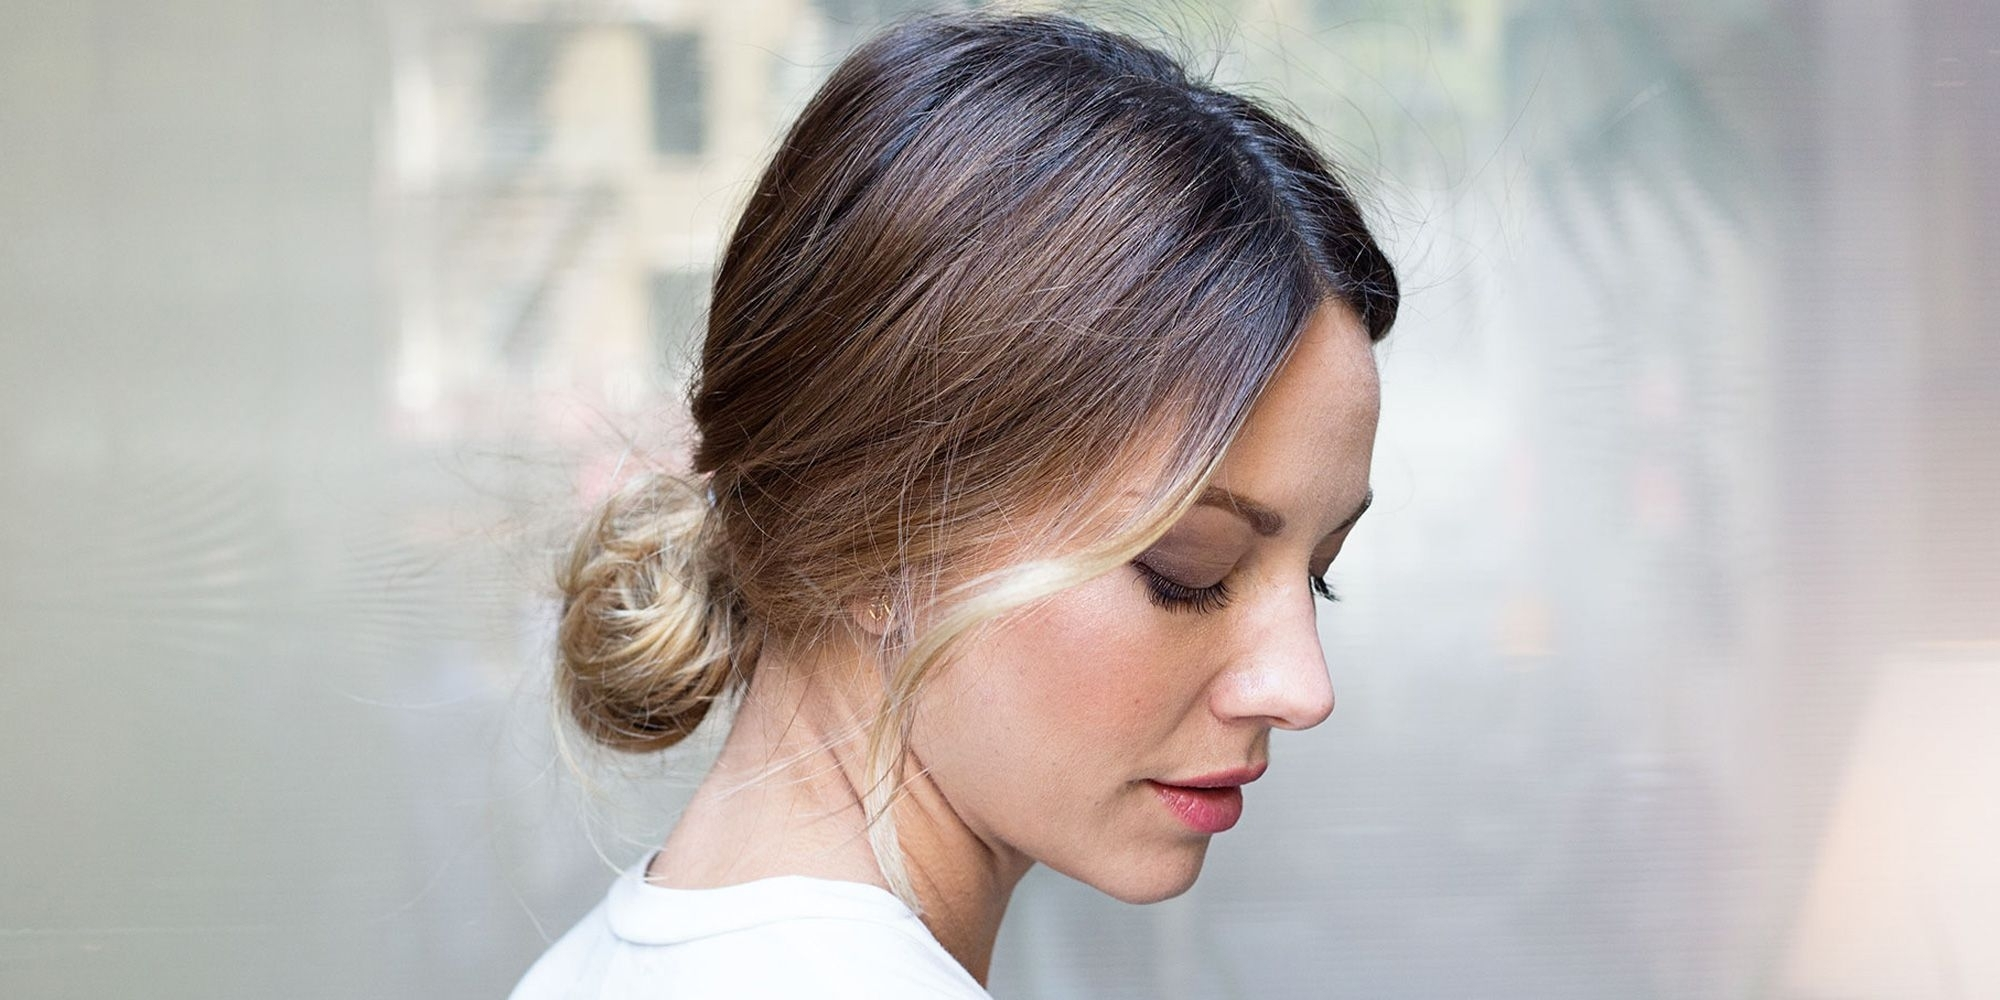 11 Ways To Make Your Bun Look Less Basic Regarding Most Recent Low Hanging Ponytail Hairstyles (View 14 of 20)